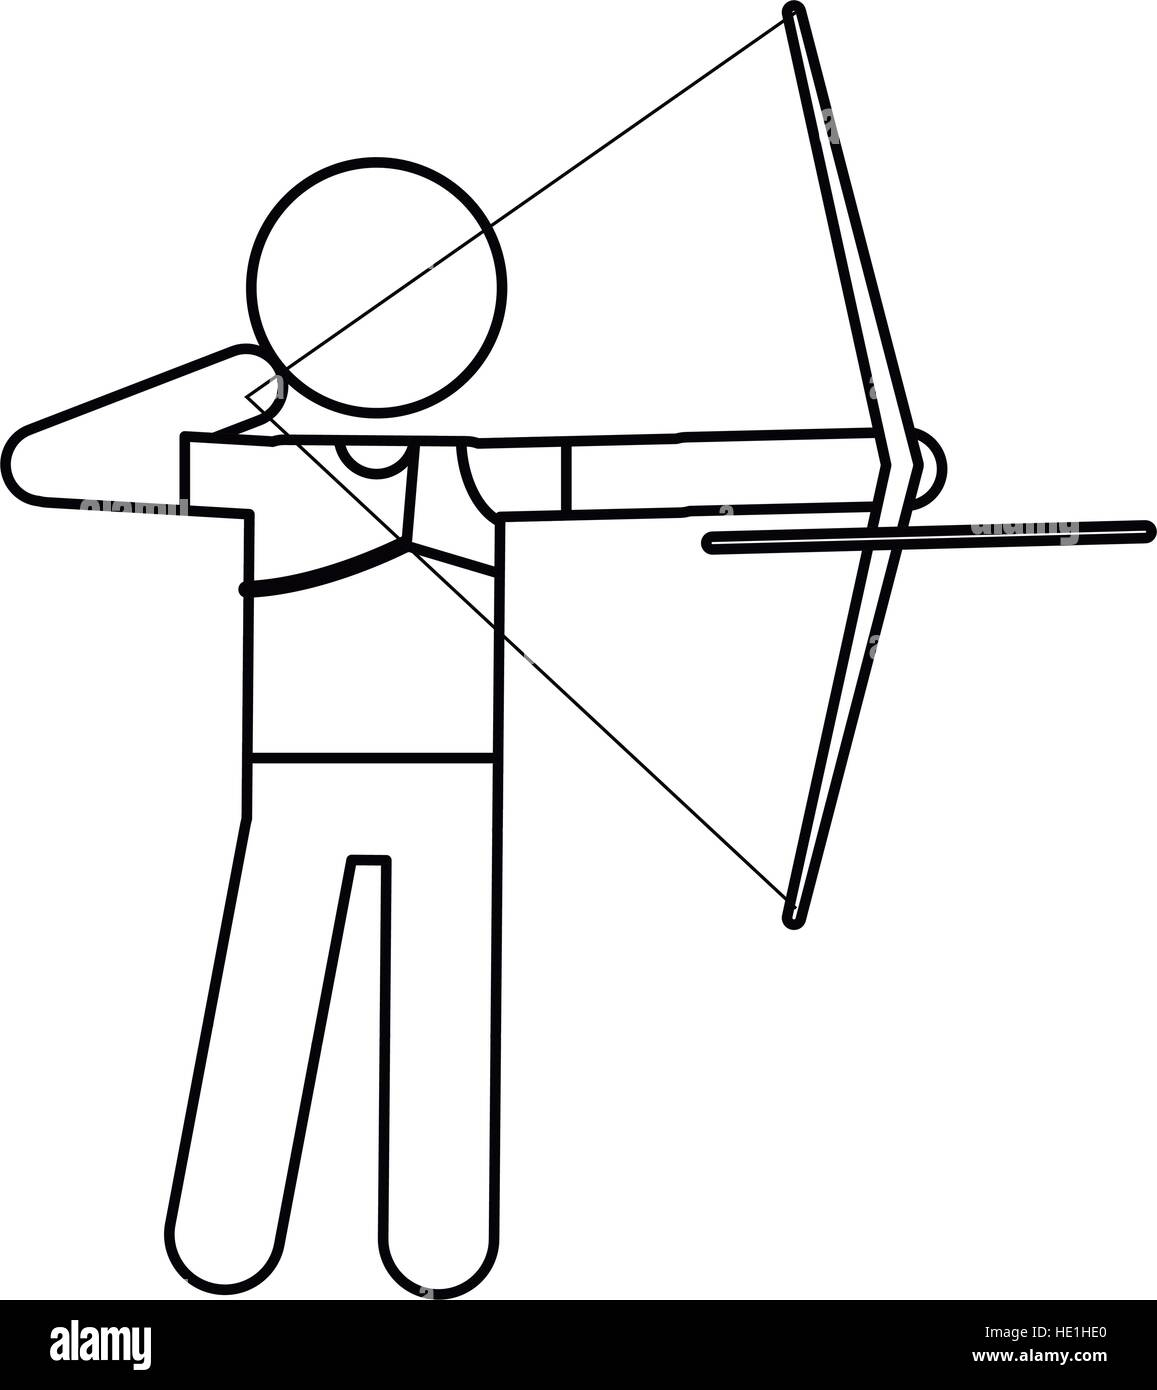 hight resolution of archery player aiming bow game outline stock image